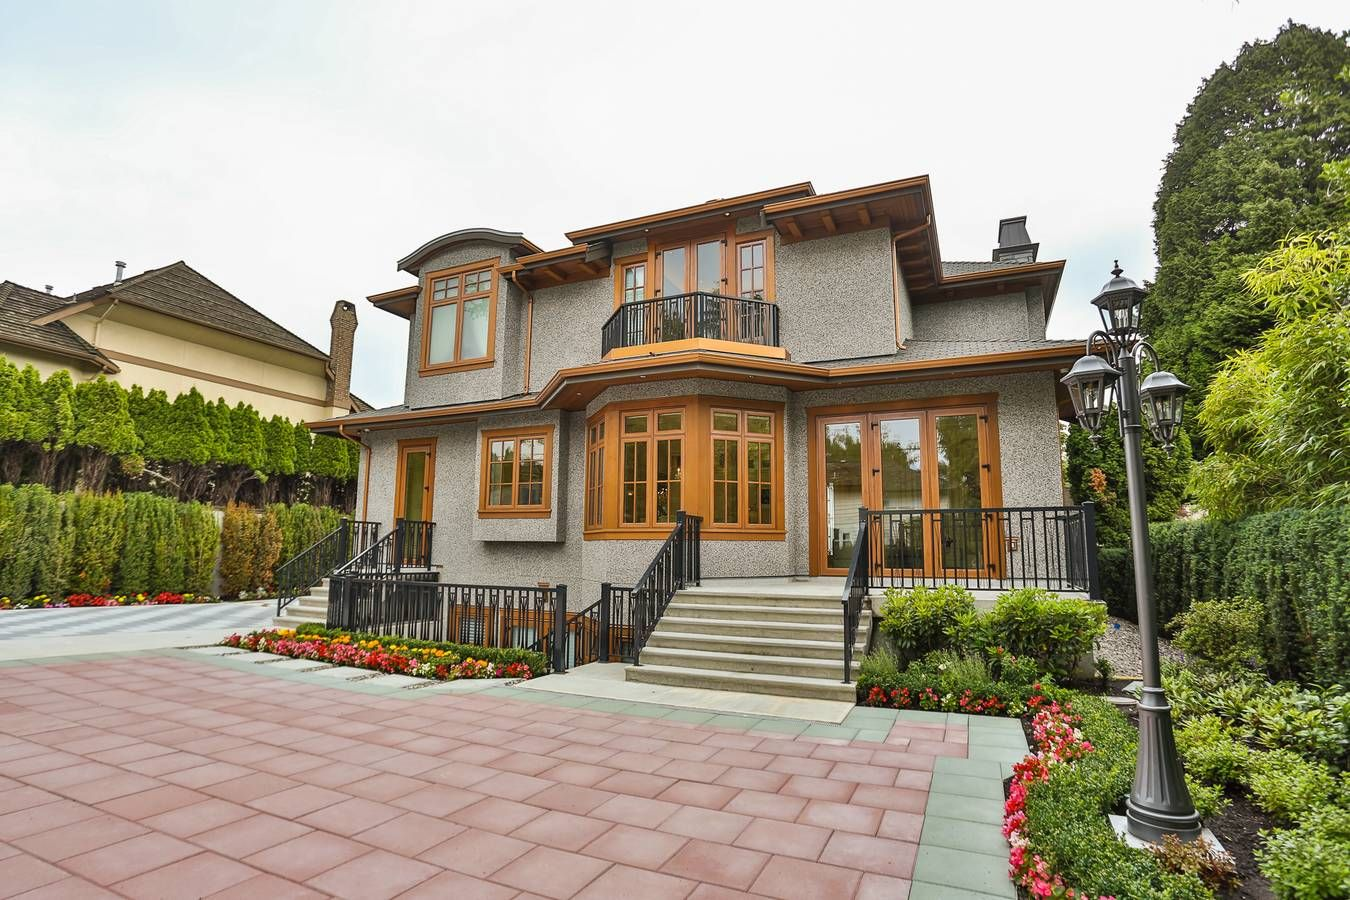 Photo 23: Photos: 5845 WILTSHIRE Street in Vancouver: South Granville House for sale (Vancouver West)  : MLS®# R2132563